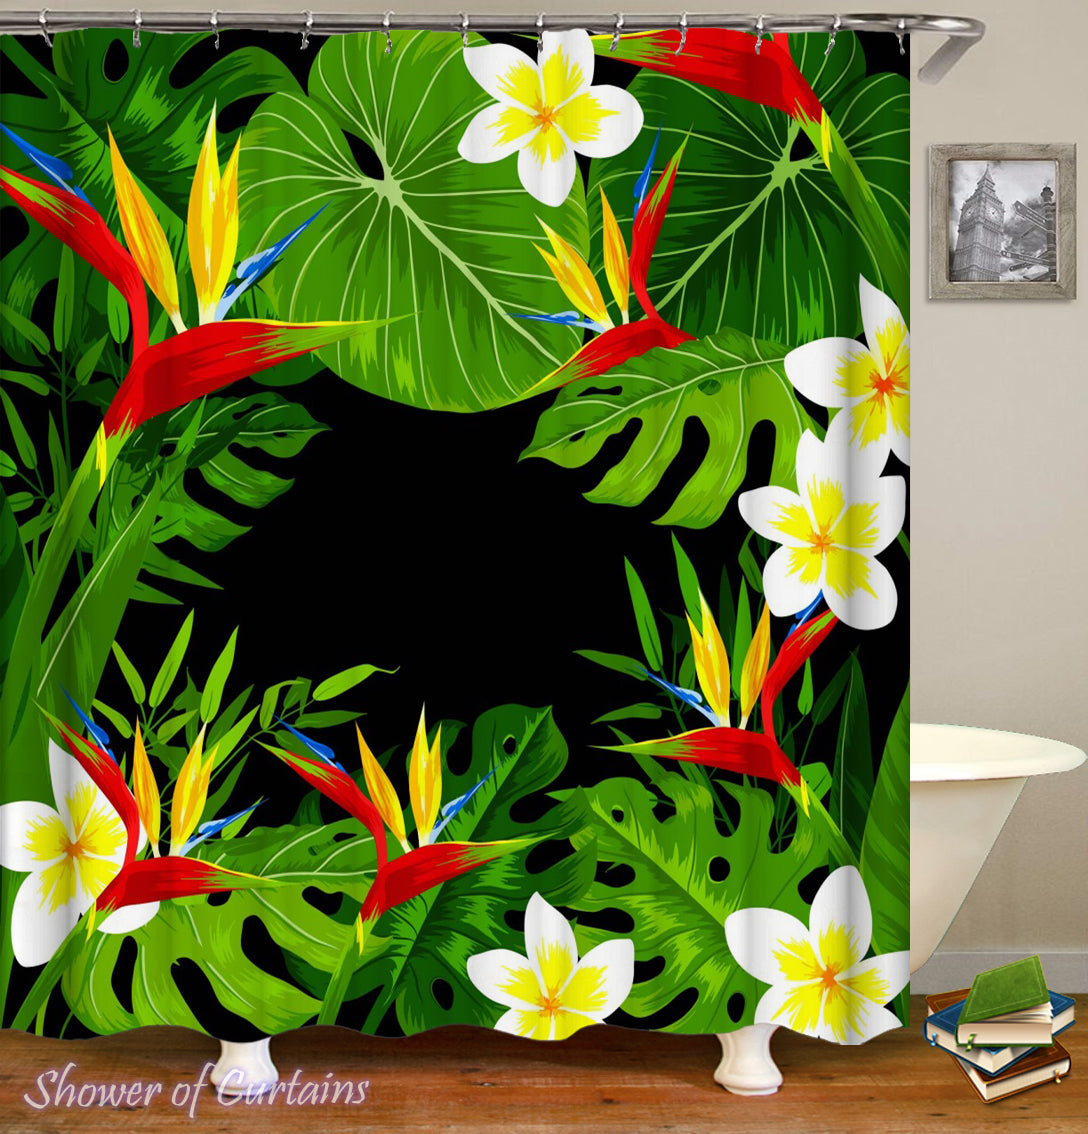 Shower Curtains | Tropical Flowers And Leaves – Shower of Curtains